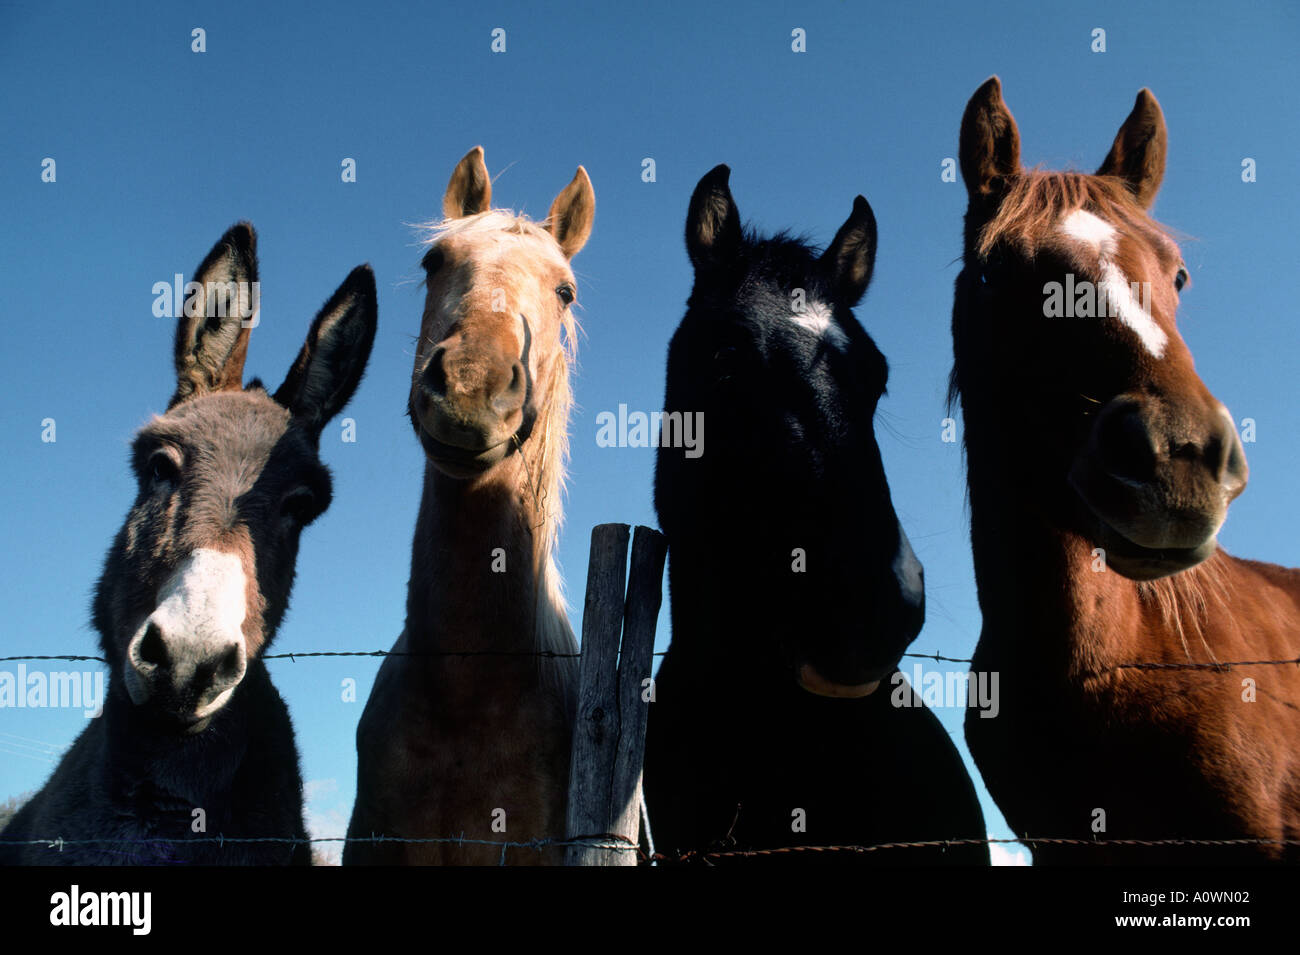 A donkey and three horses together look over a barbed wire fence ...